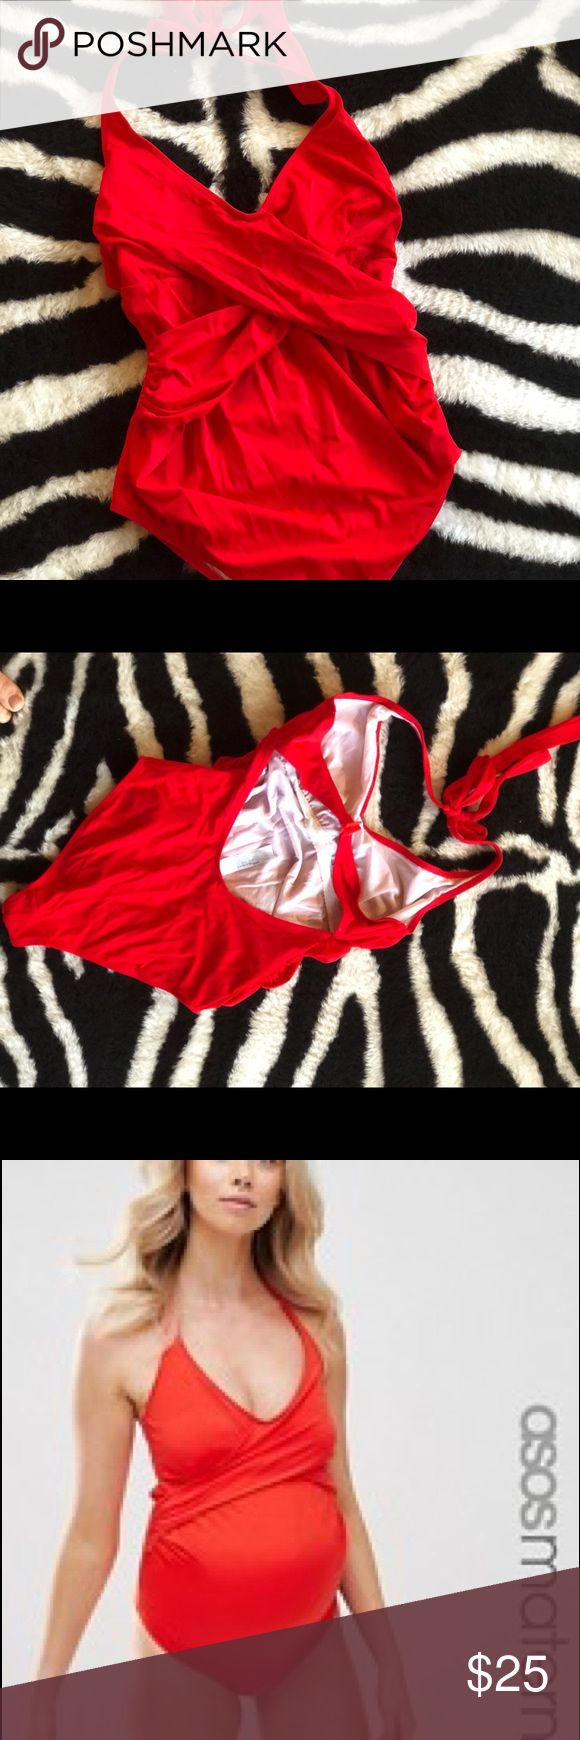 ASOS Red Maternity one piece Swimsuit, size 8/M EUC— super cute and bright yet chic solid ASOS maternity one piece swimsuit. Color is very bright red. Crossover top is very flattering.  Size US 8 (or UK 12)— I would say it fits a medium. ASOS website picture so you can see it on— I thought it looked better on in person than on the model (true story!) ASOS Maternity Swim One Pieces